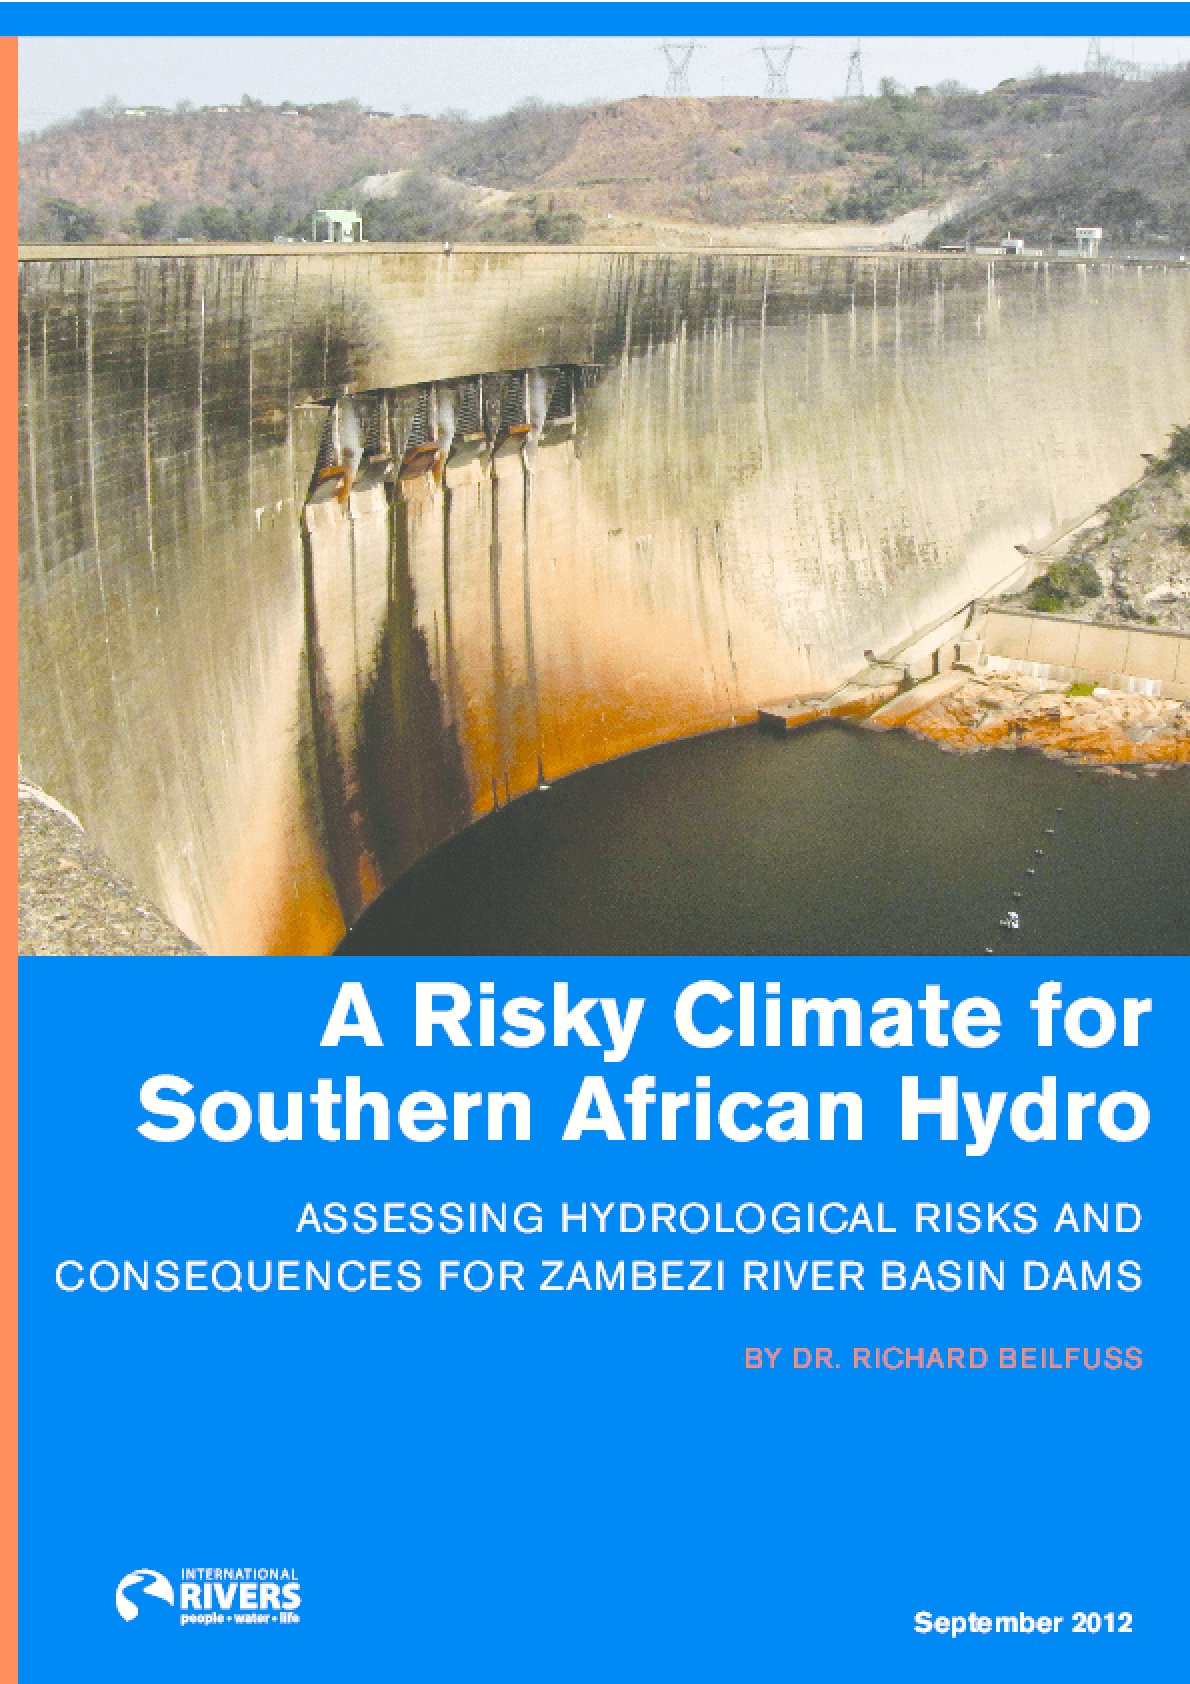 A Risky Climate for Southern African Hydro